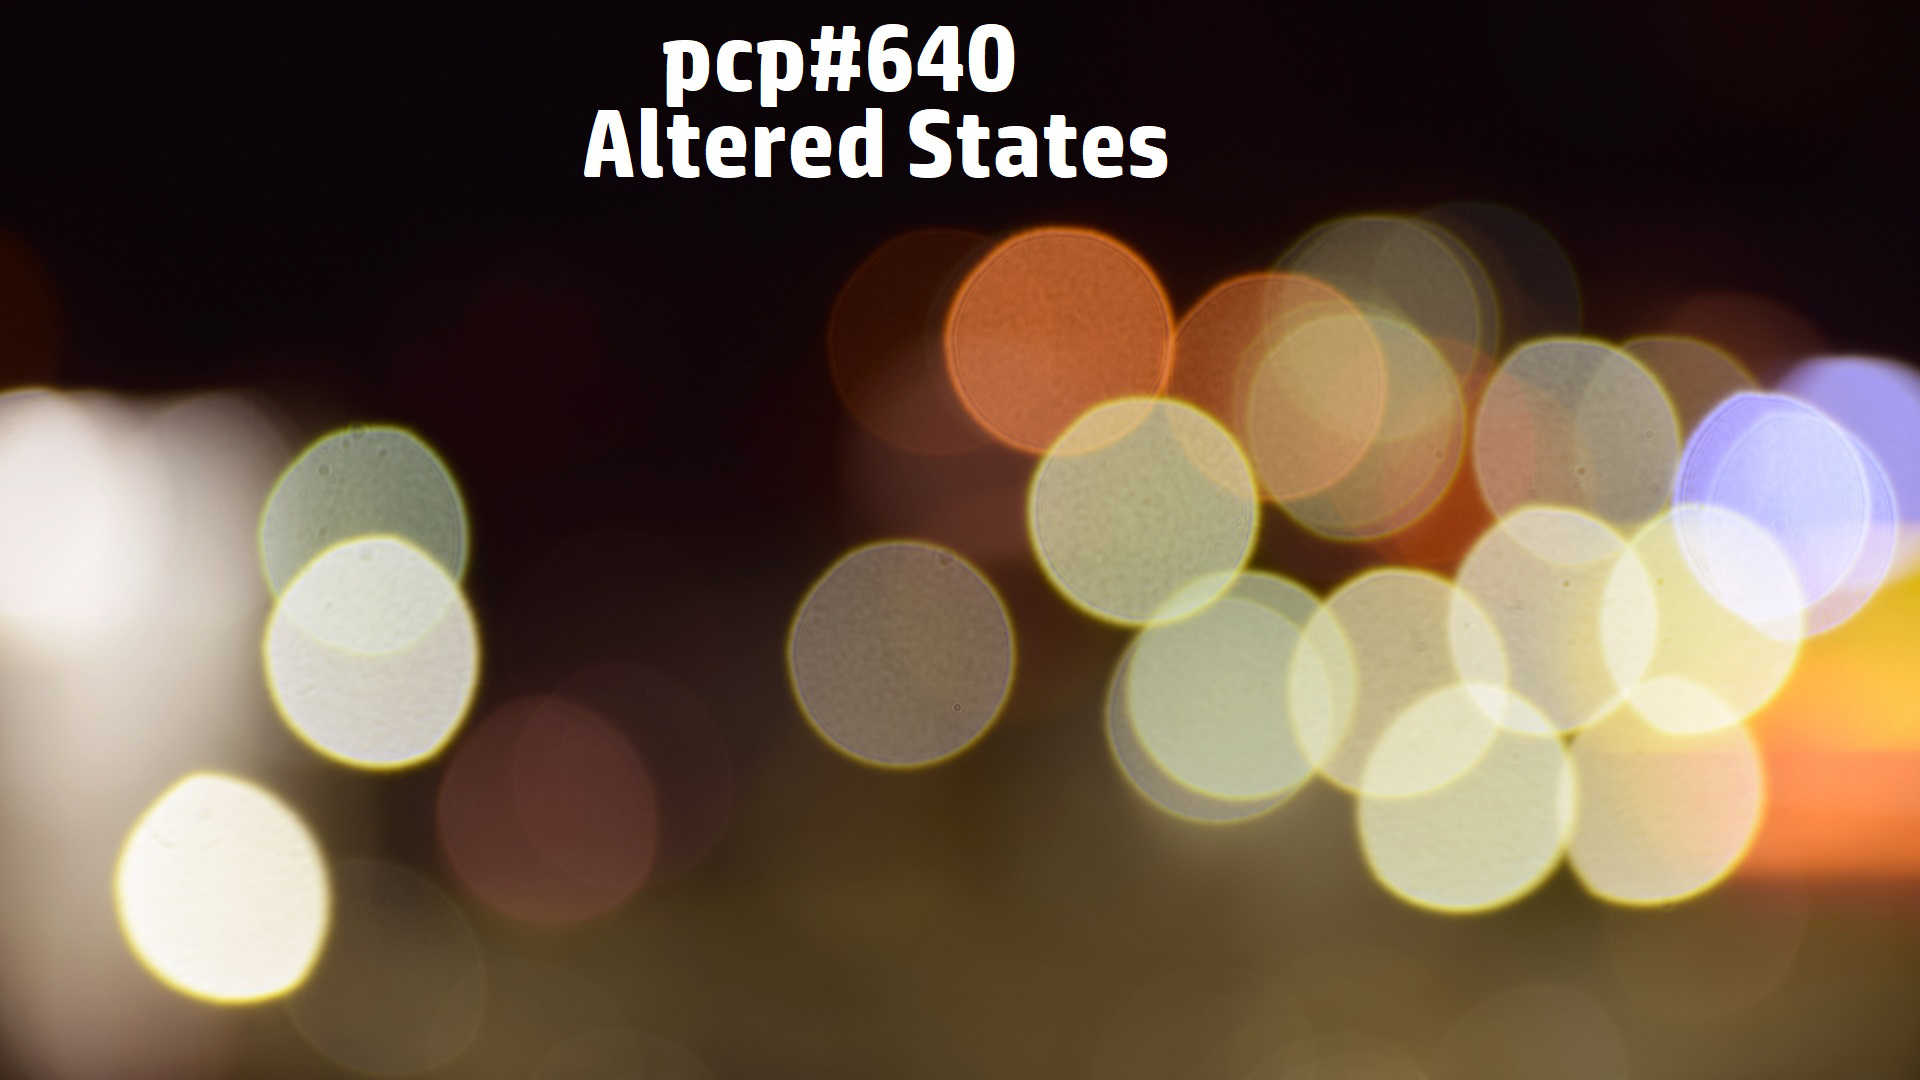 PCP#640... Altered States....